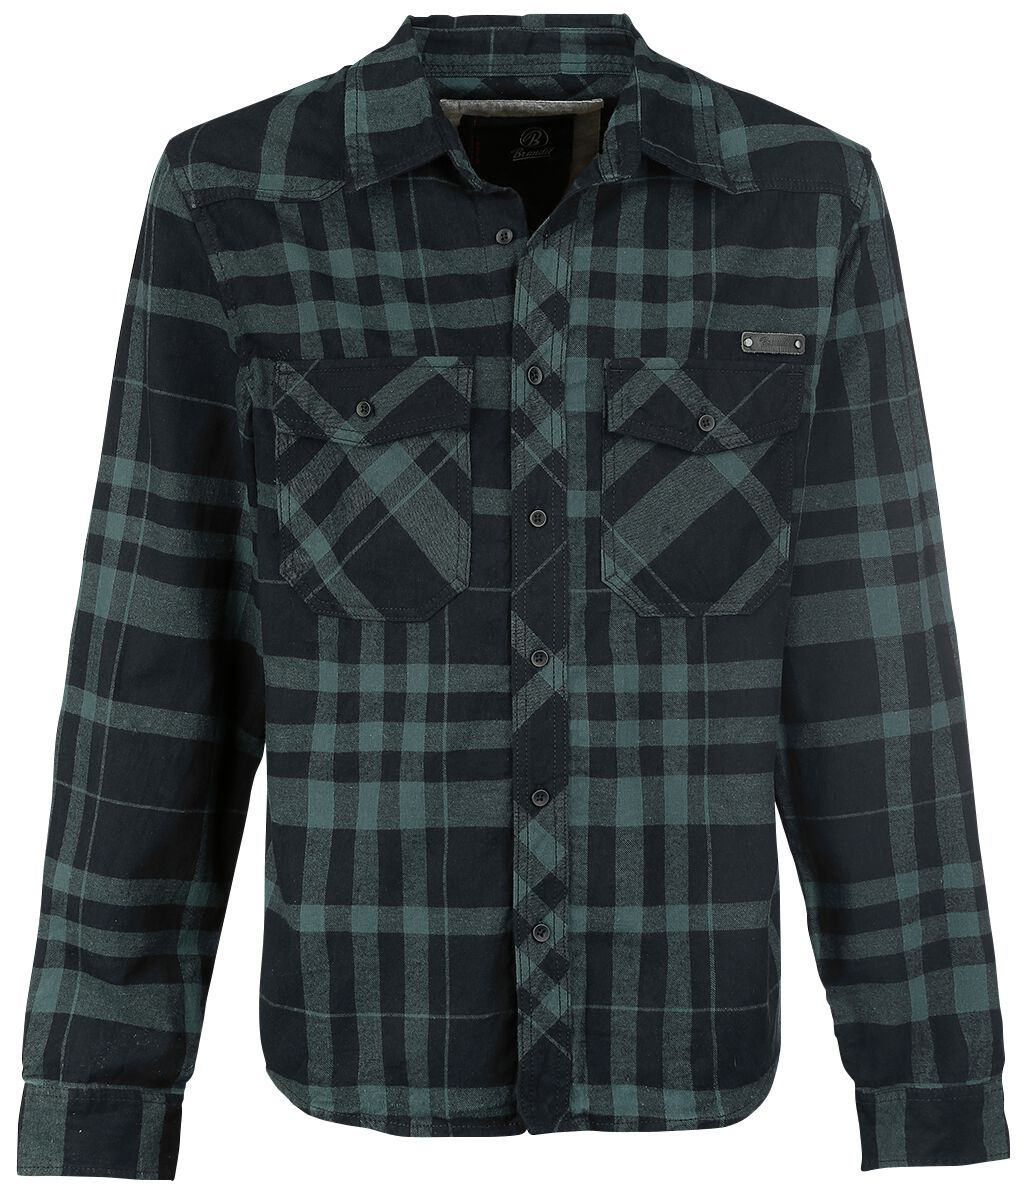 Image of   Brandit Checkshirt Skjorte sort-grøn